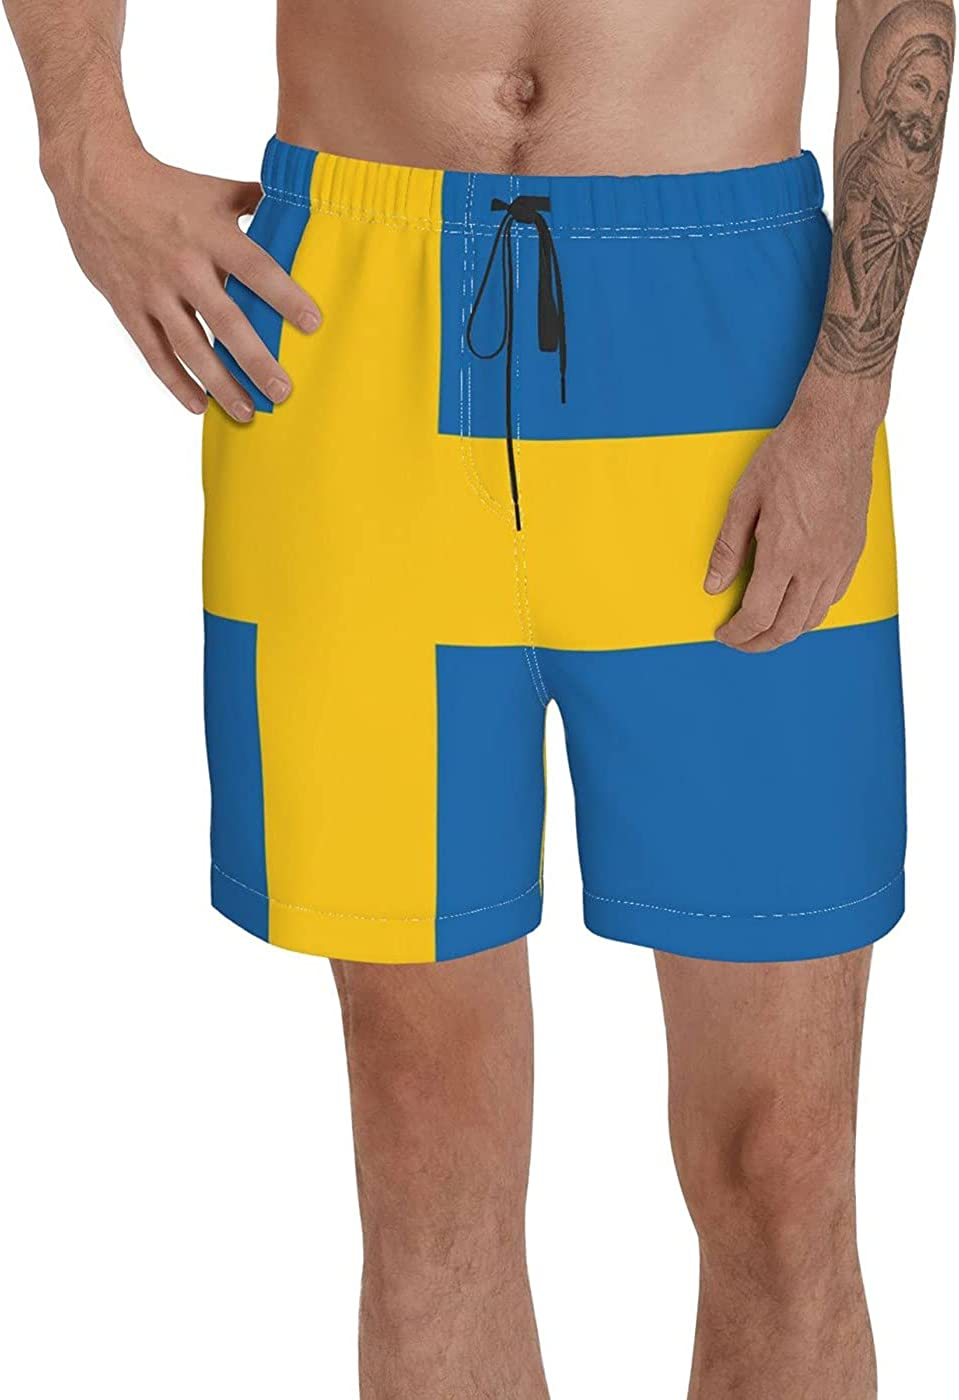 Count Sweden Flag Men's 3D Printed Funny Summer Quick Dry Swim Short Board Shorts with